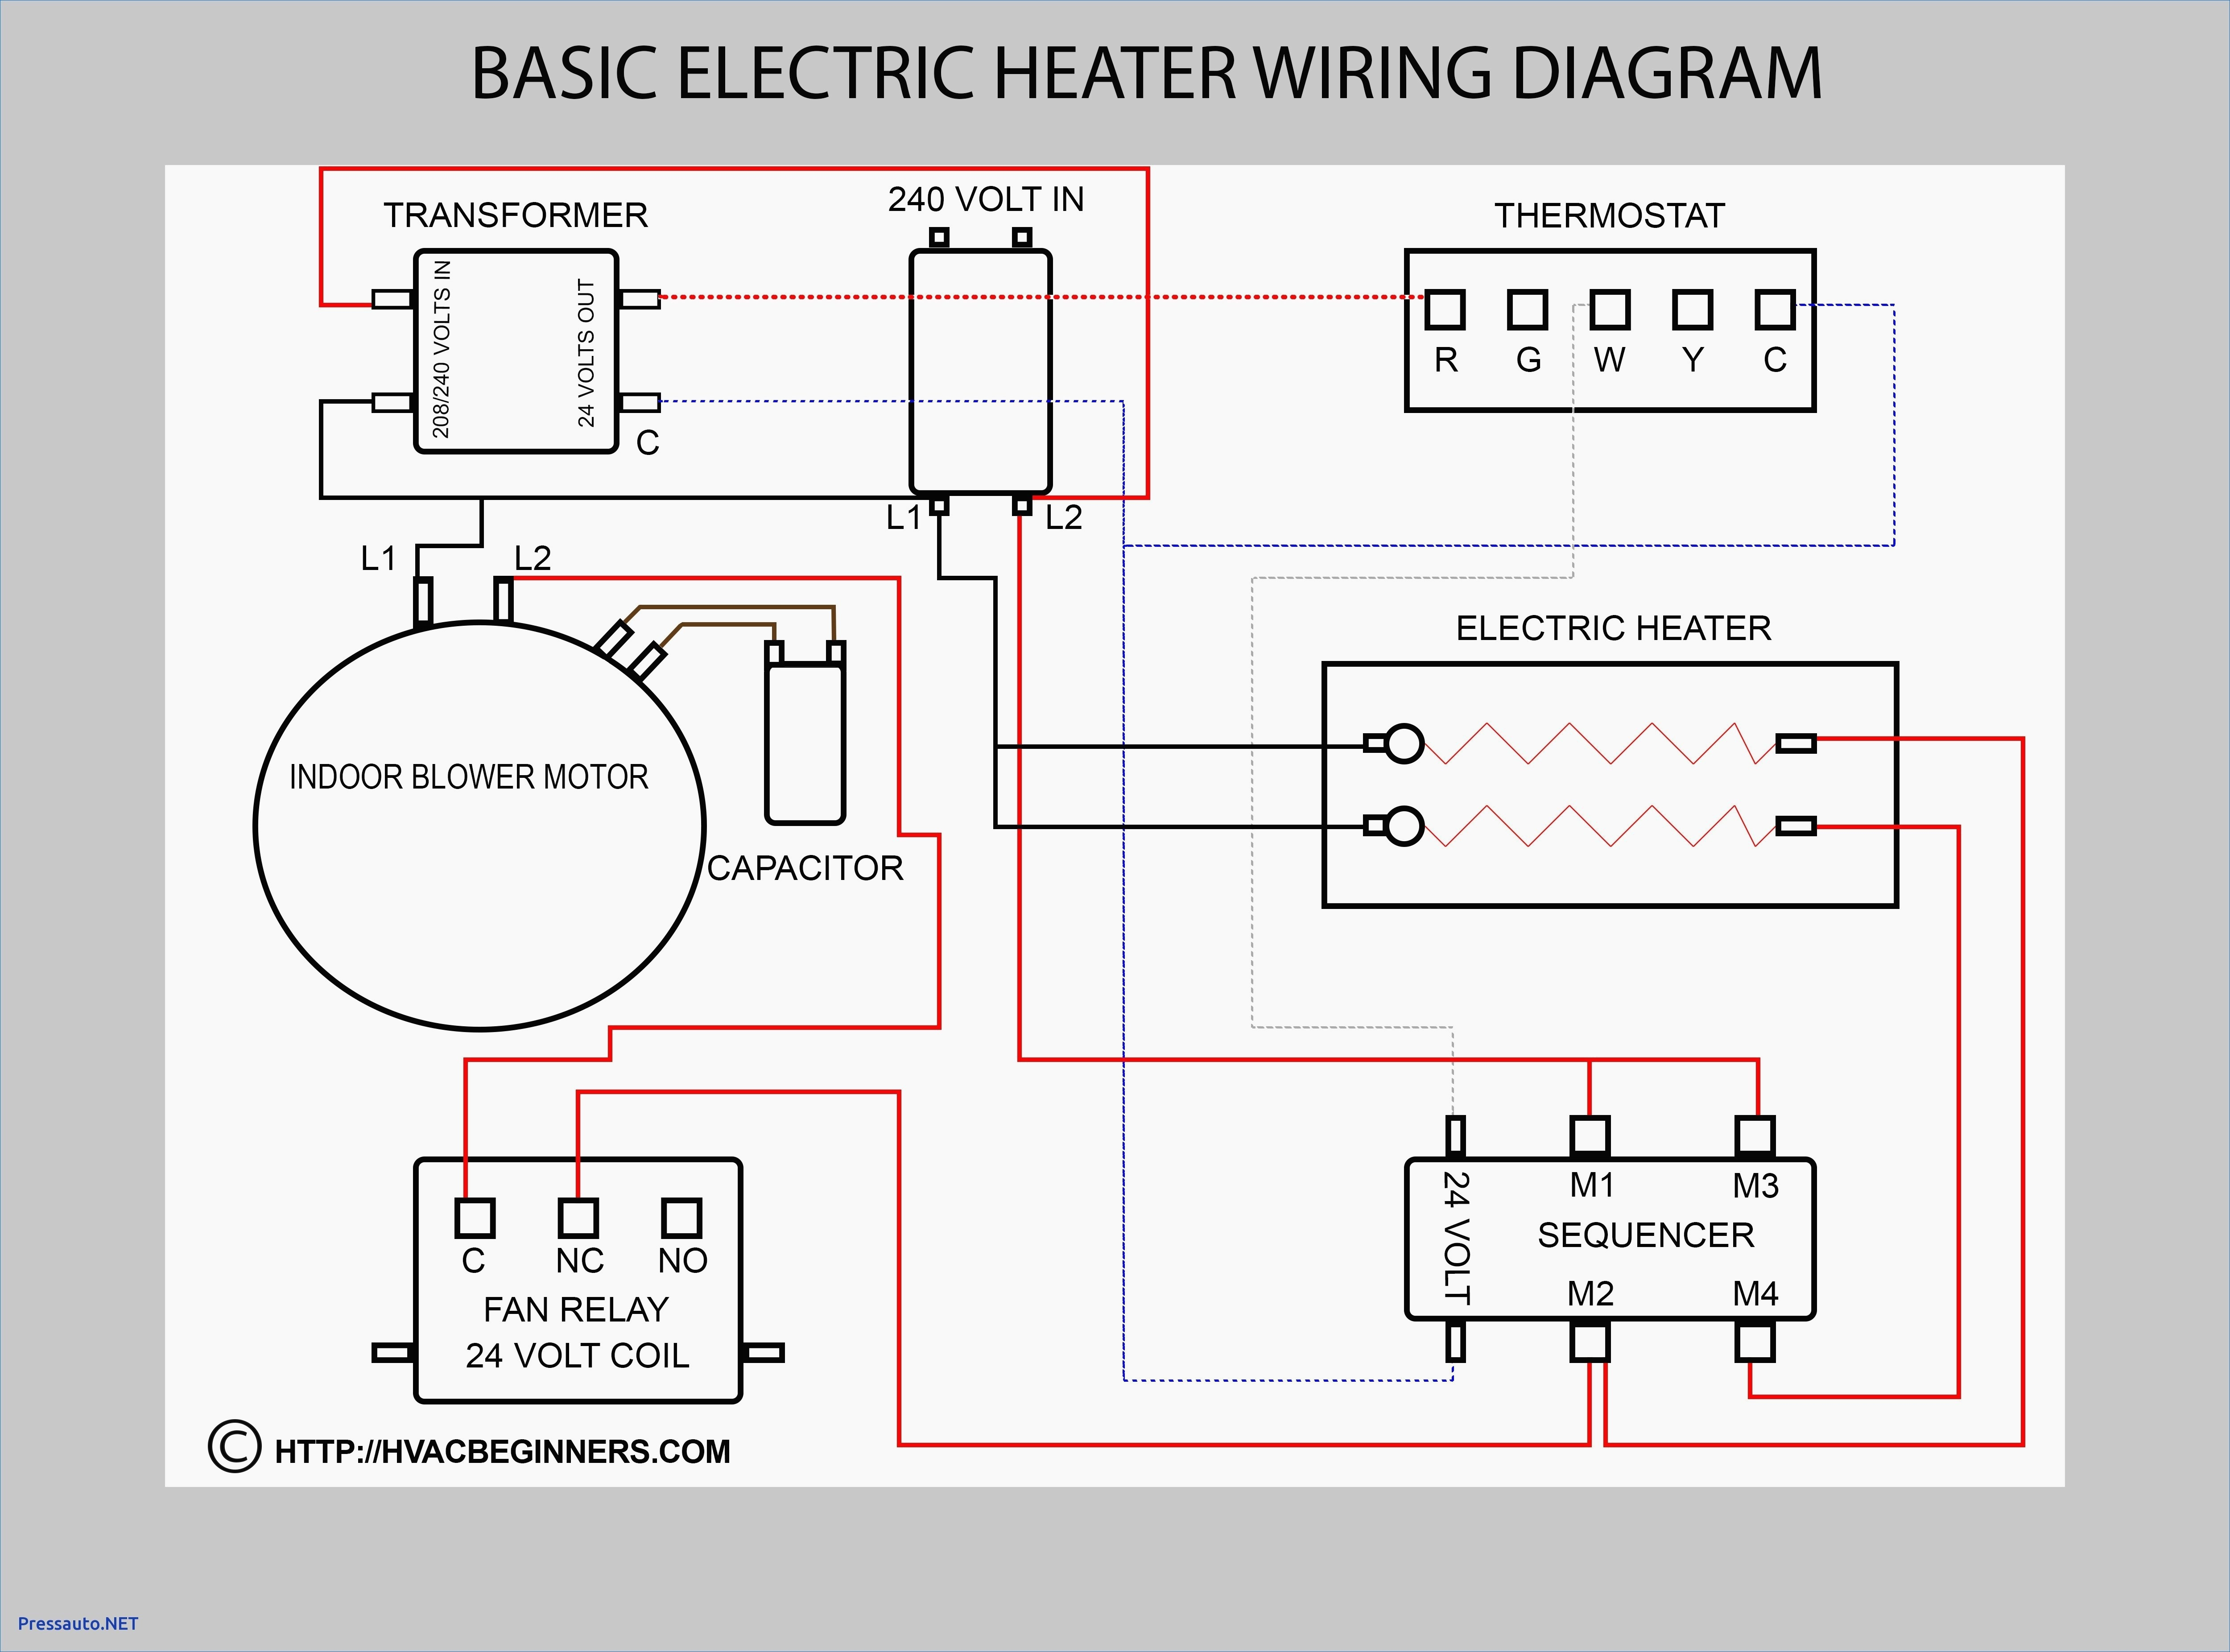 electric floor heating wiring diagram Download-Wiring Diagram for S Plan Central Heating System Best Wiring Diagrams for Underfloor Heating Systems 17-d